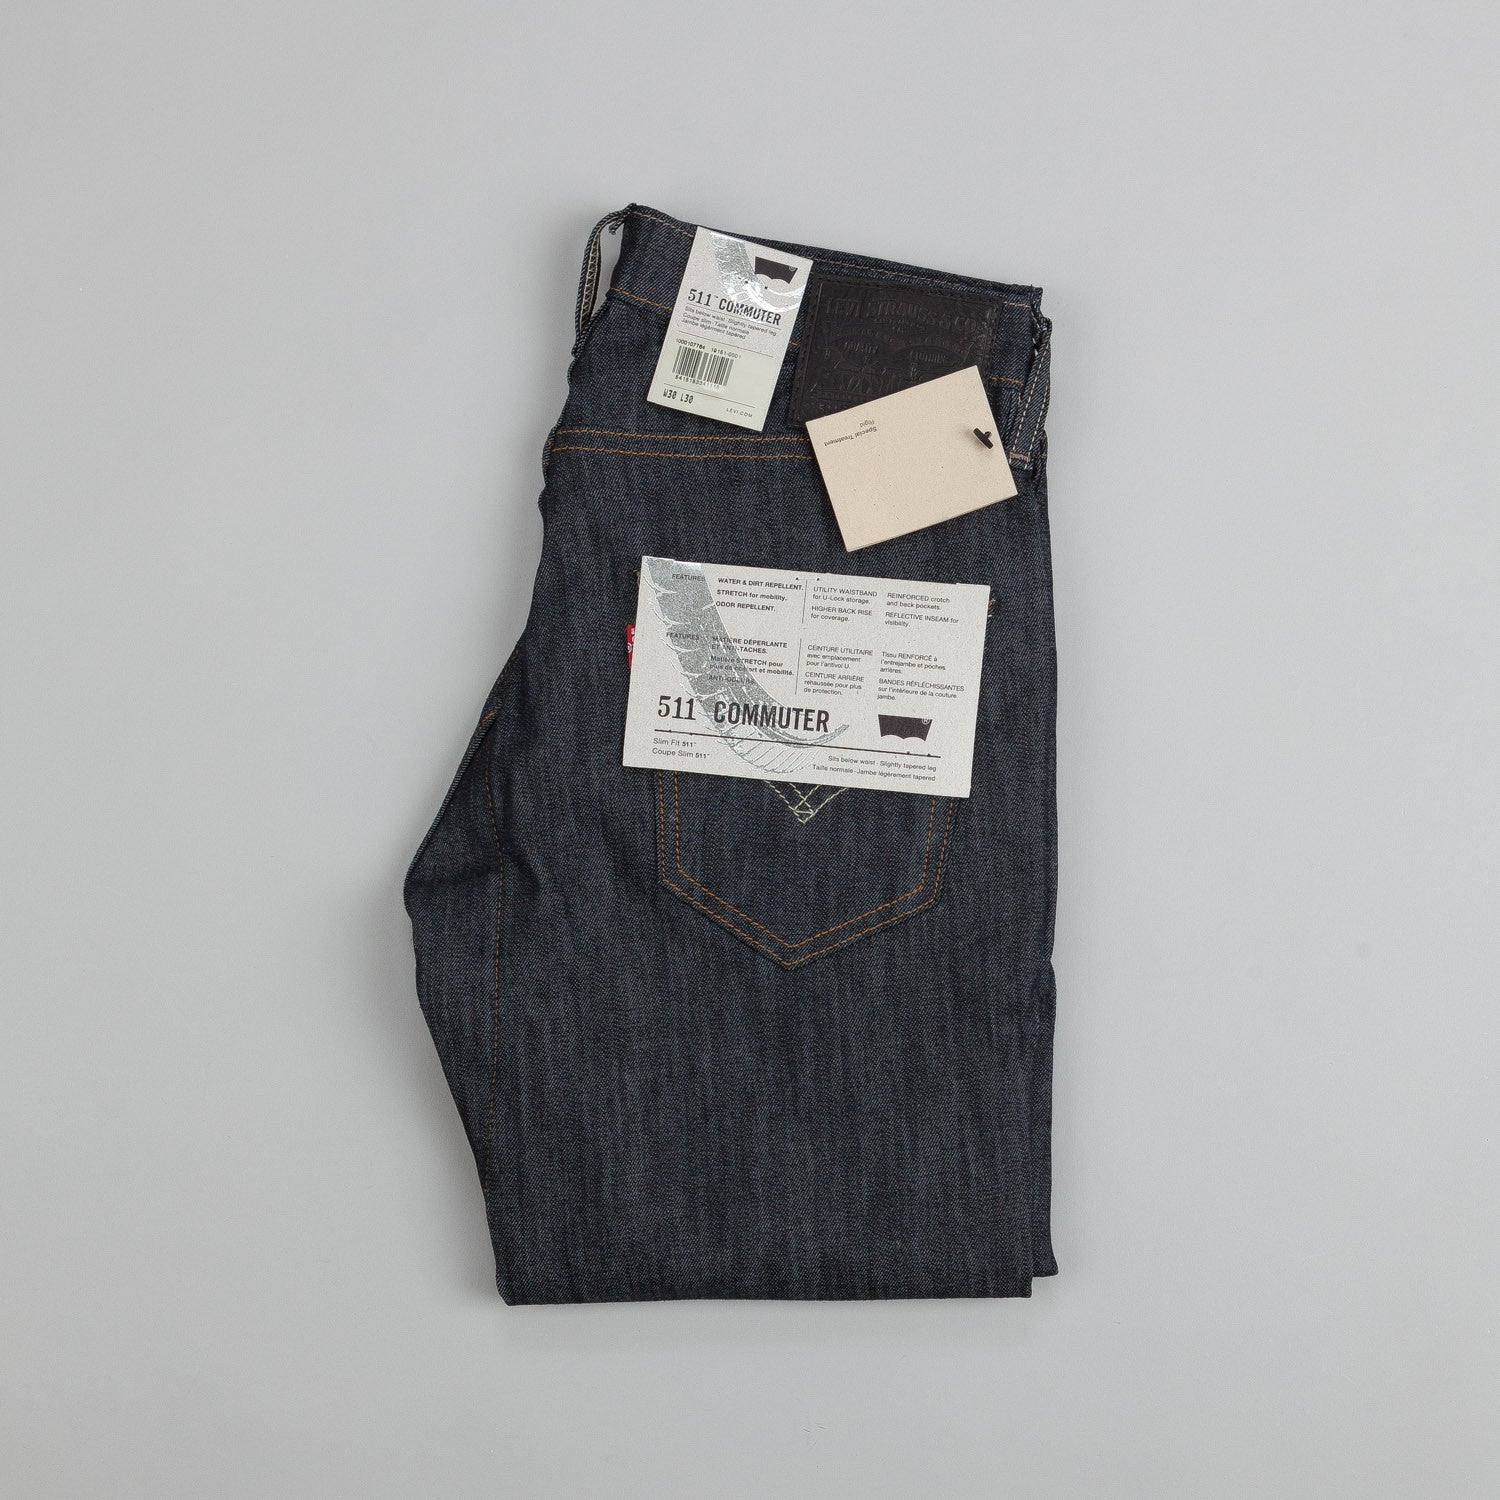 Levi's'® Commuter Series 511 Slim Jeans Indigo Denim Rigid